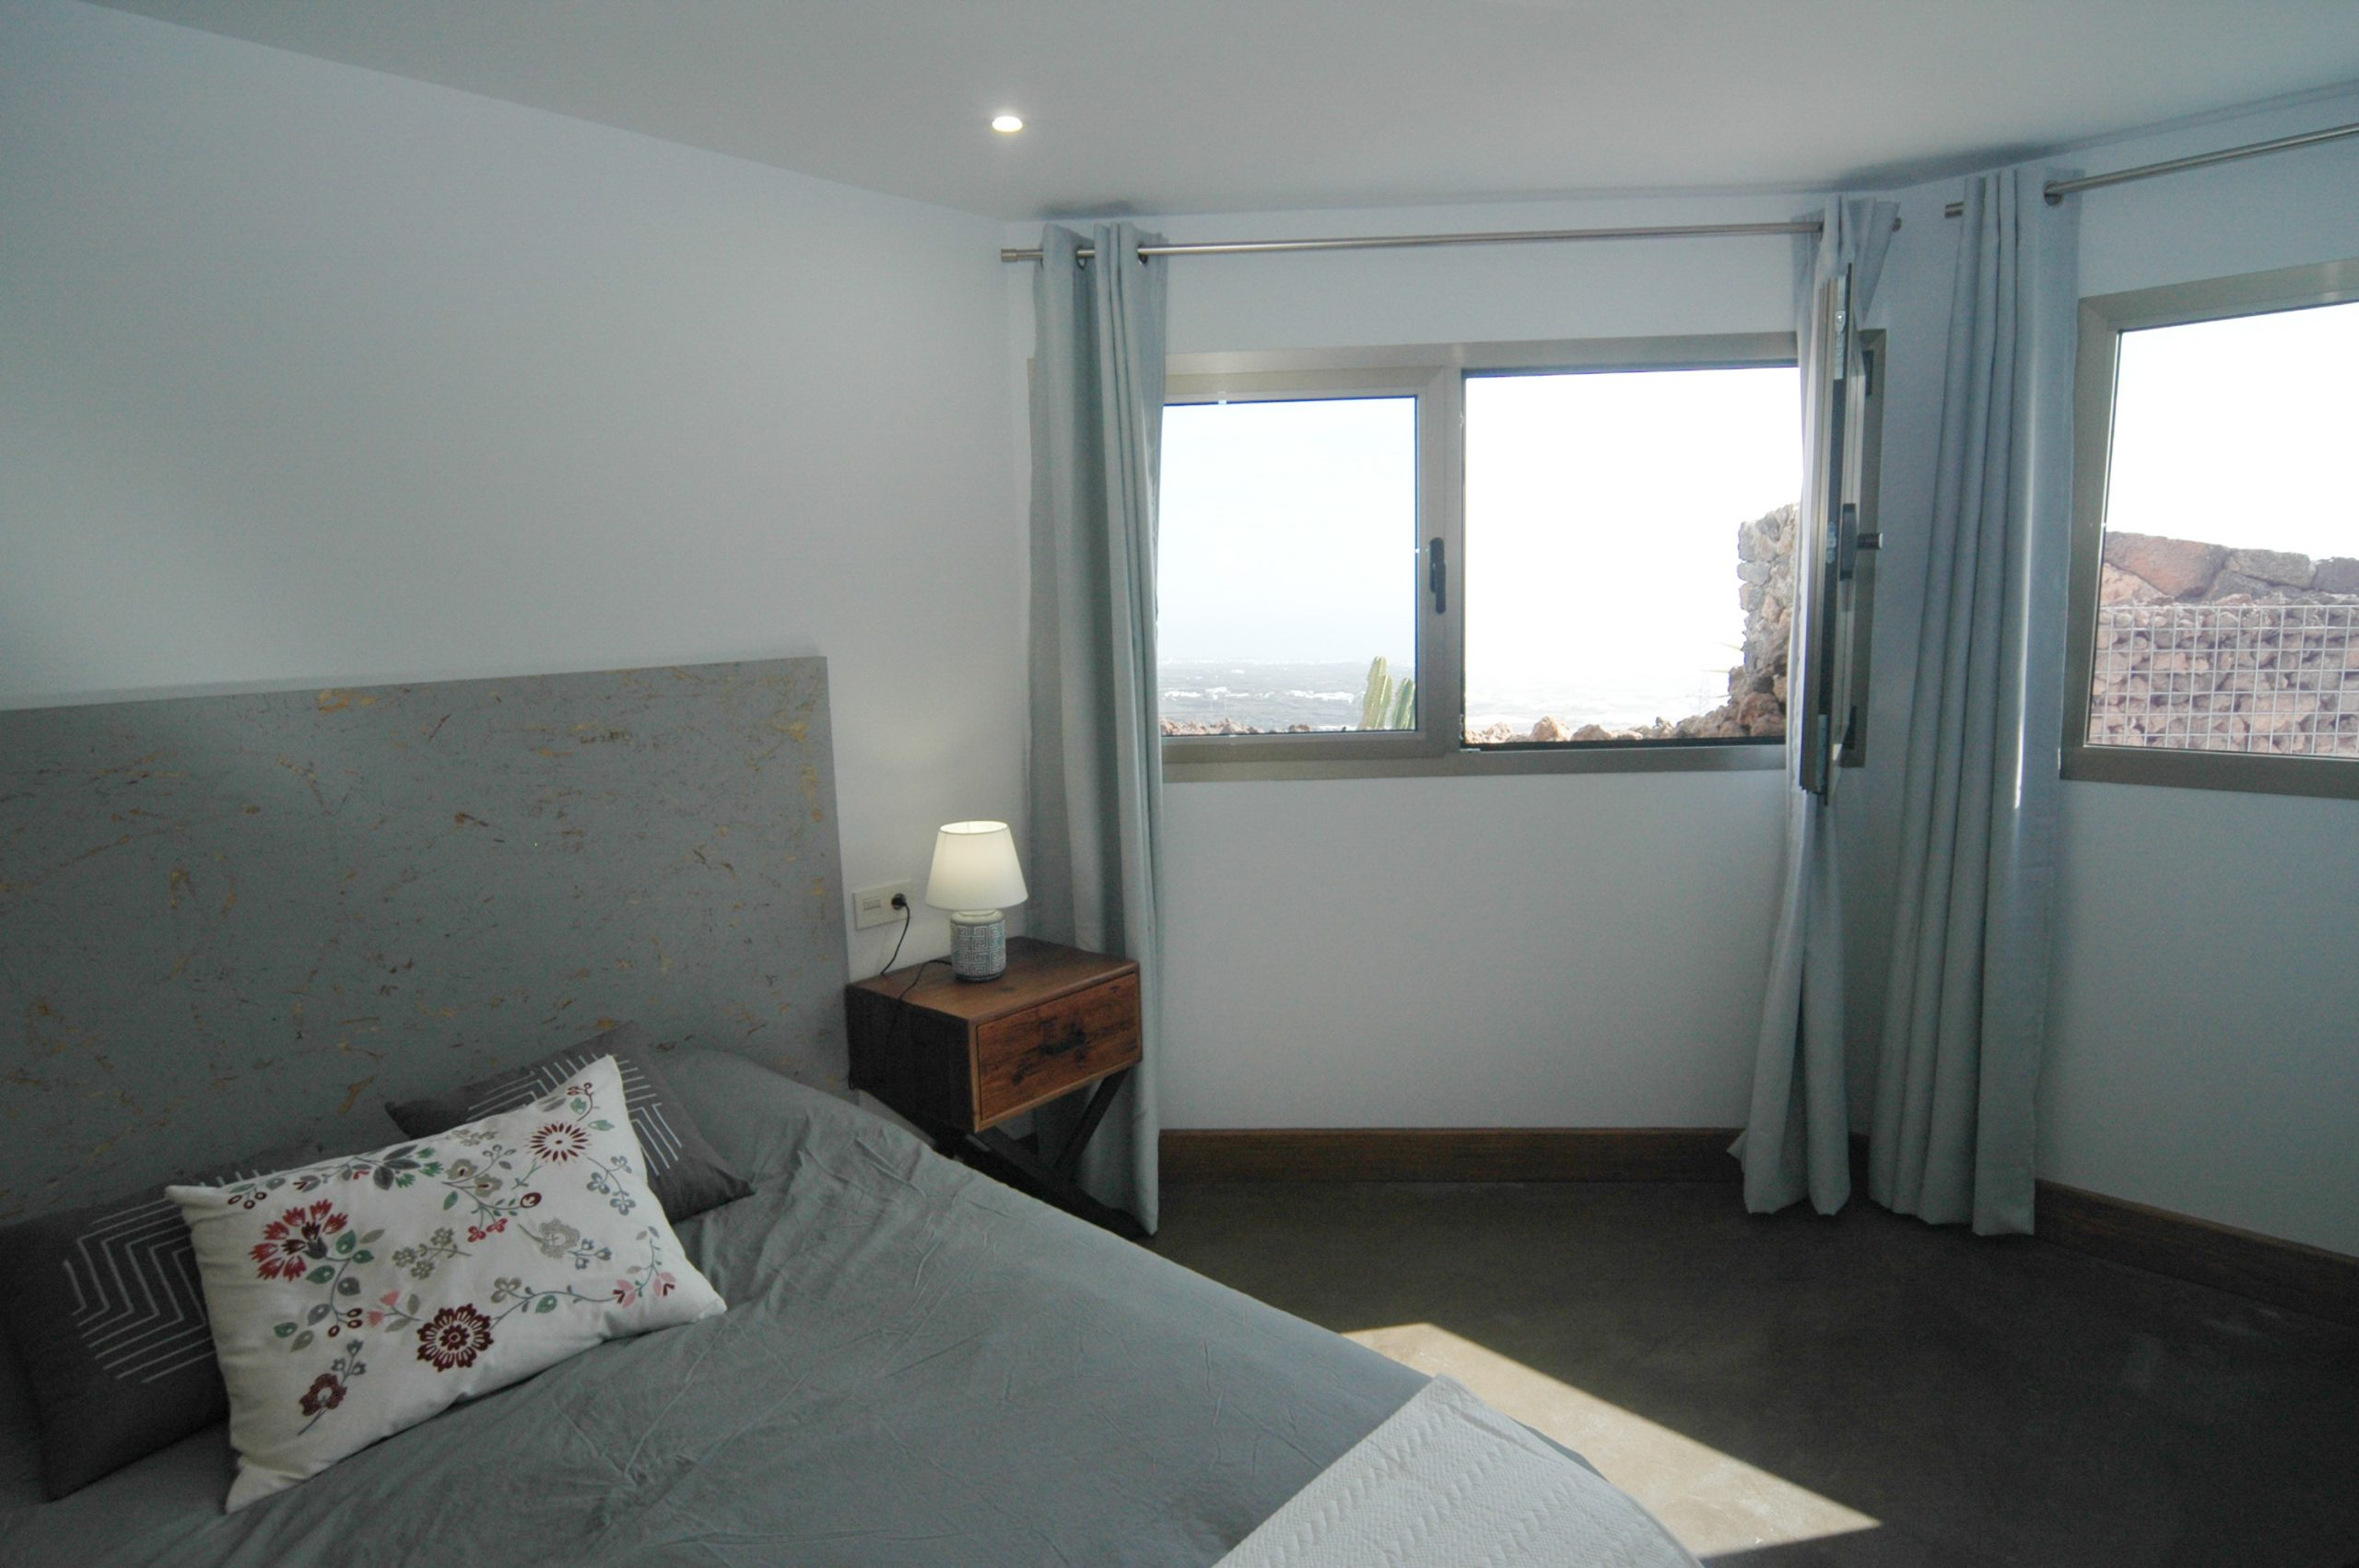 LVC339887 Bedroom with panoramic views